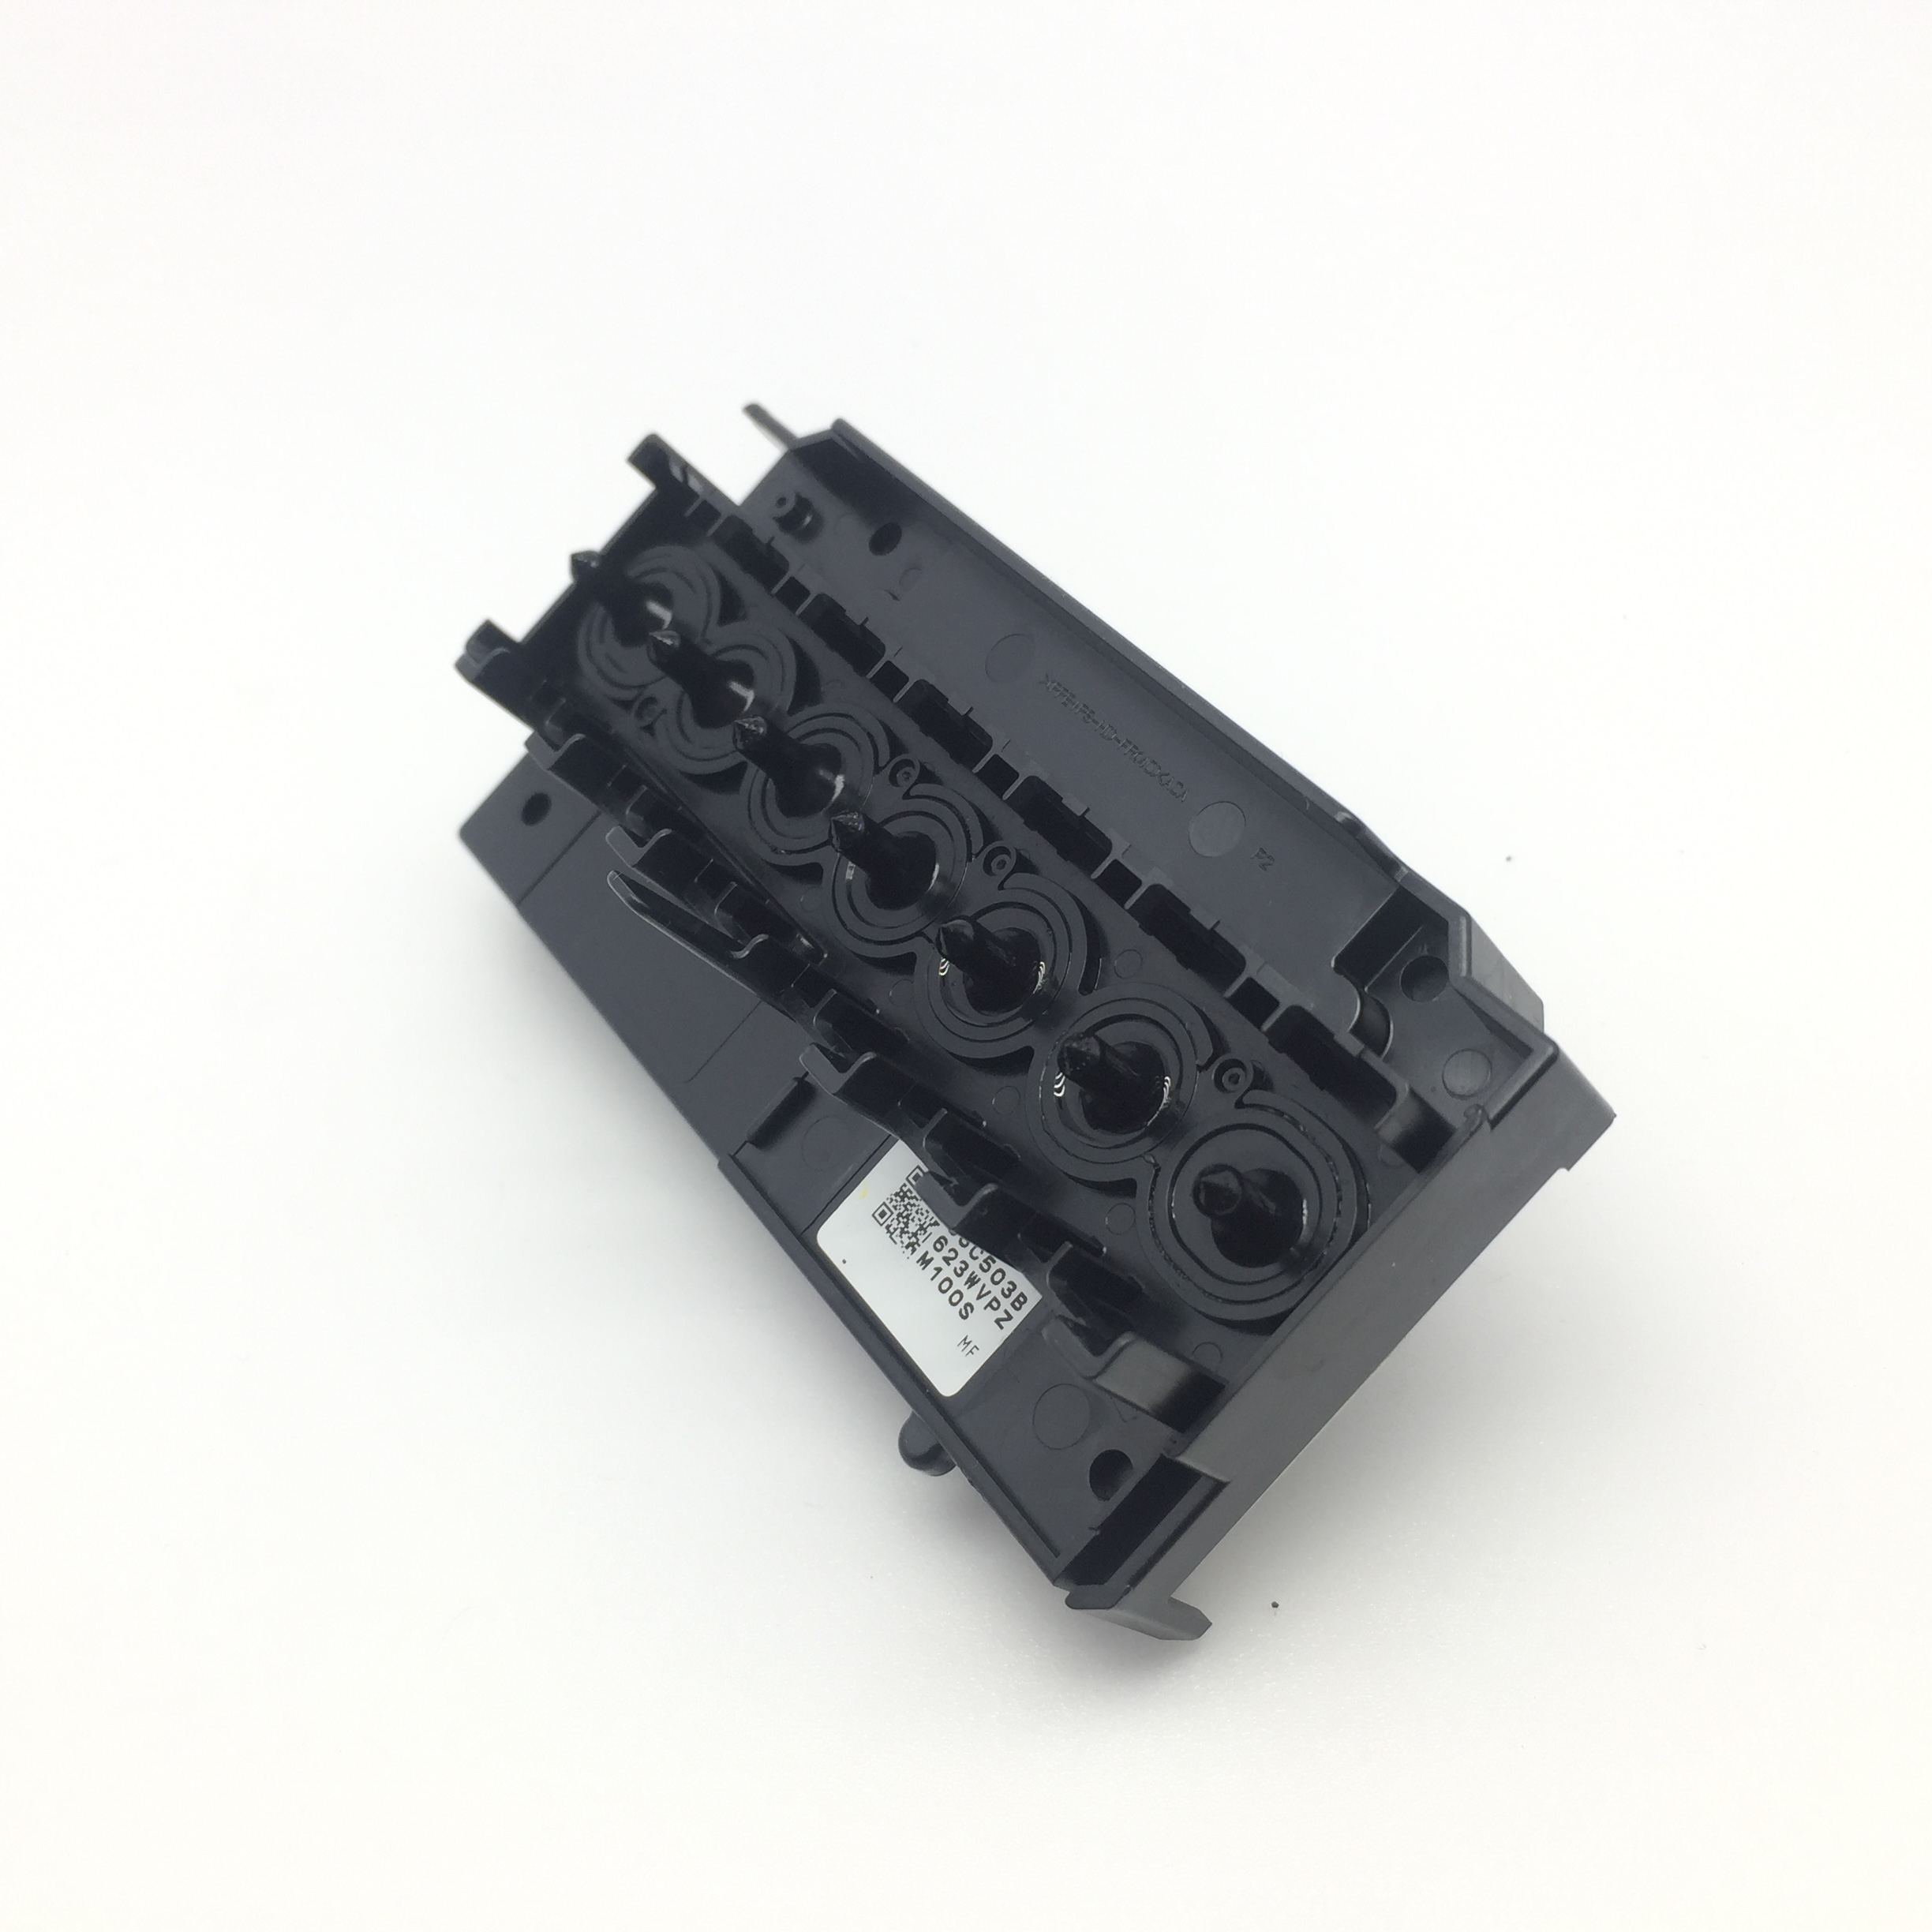 Truested seller! High quality and cheaper cost Printhead For Epson 7600 printhead For EPSON 9600 Print head For Epson PrinterTruested seller! High quality and cheaper cost Printhead For Epson 7600 printhead For EPSON 9600 Print head For Epson Printer